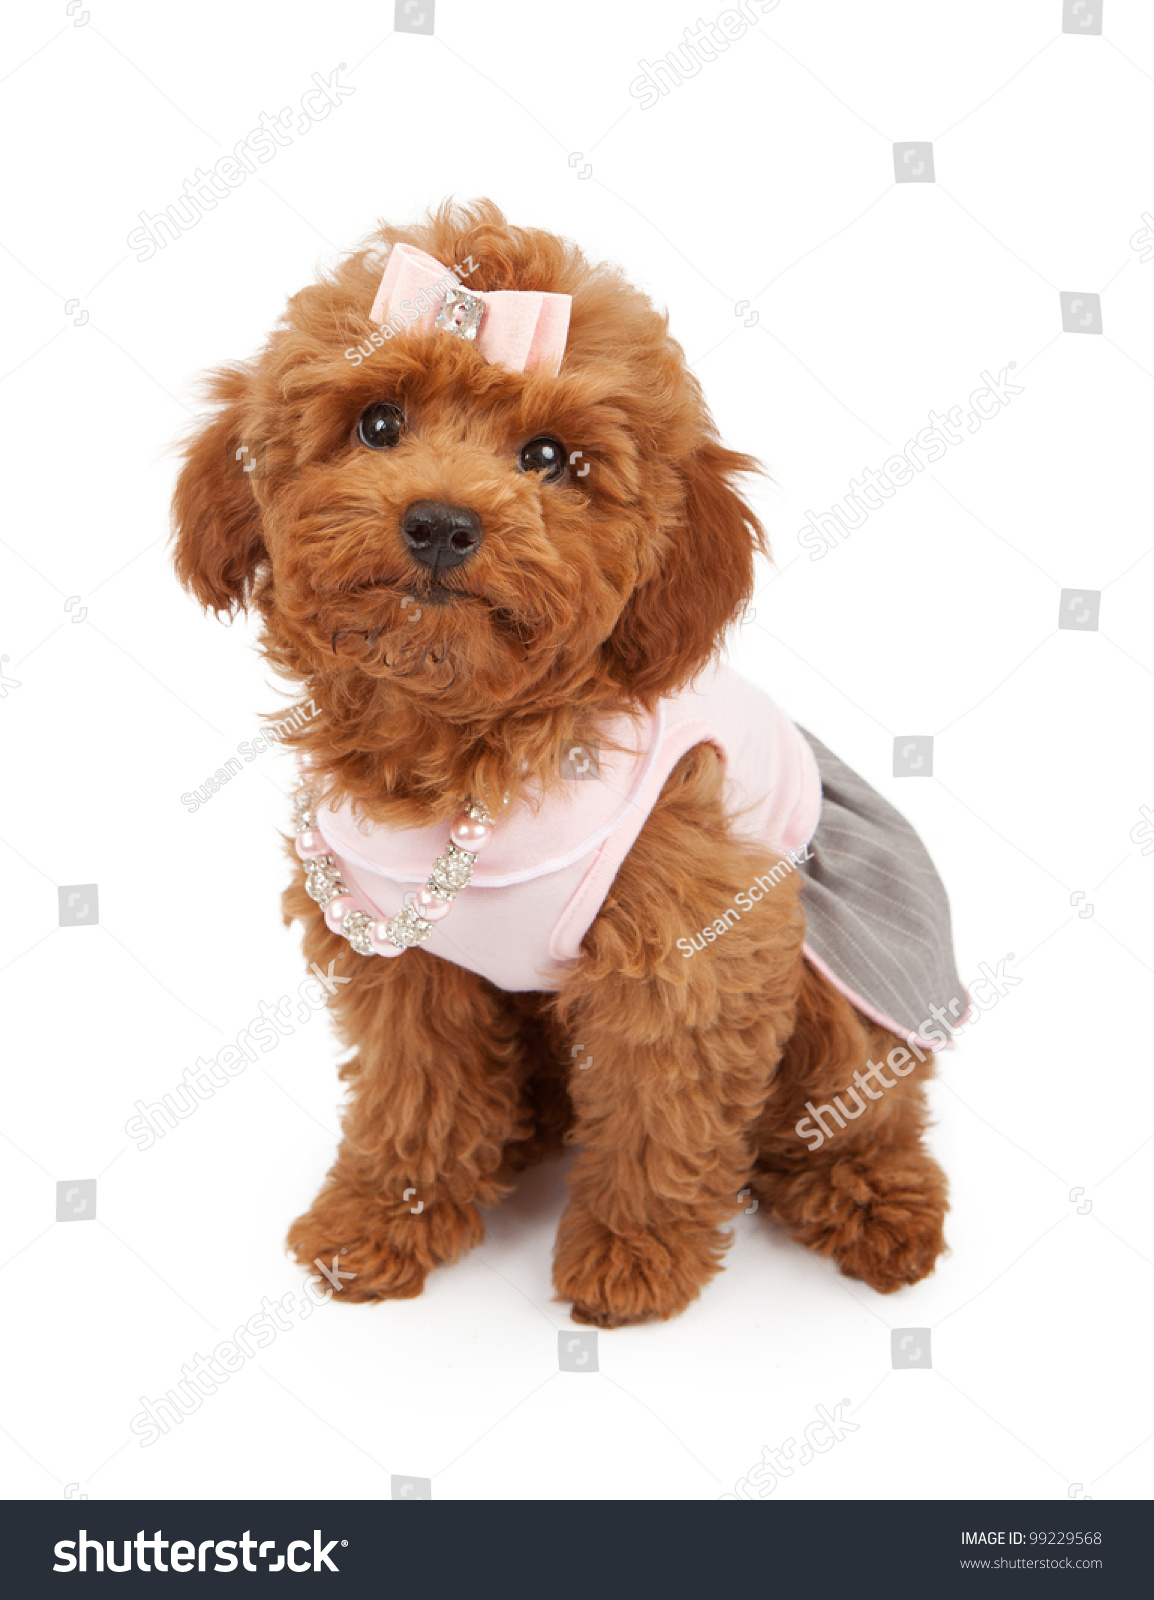 Cute Young Red Poodle Puppy Wearing Stock Photo 99229568 ...